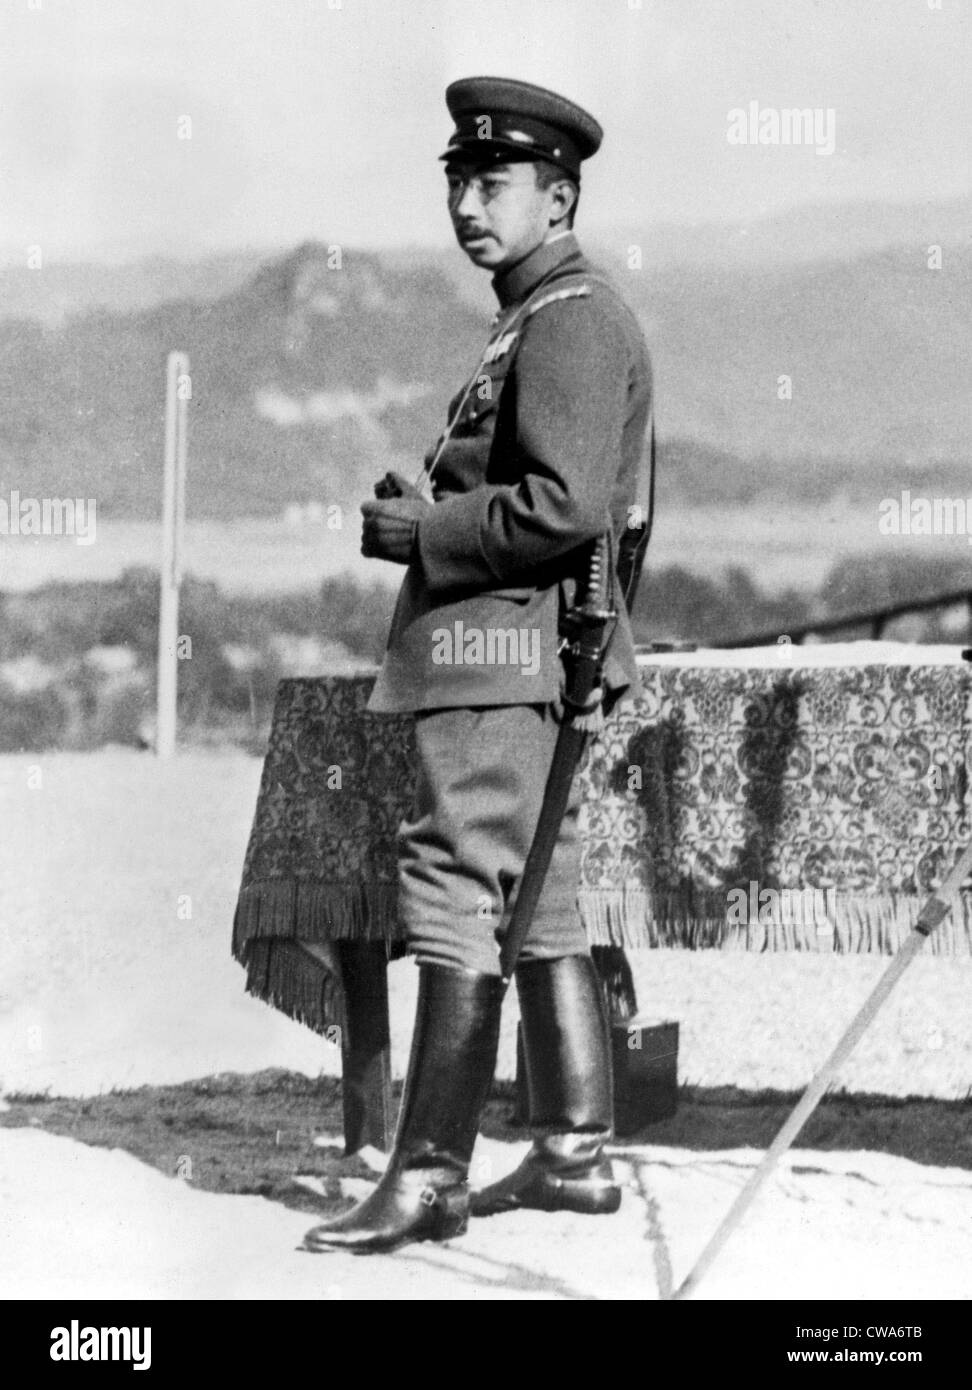 JAPANESE EMPEROR AT WAR MANEUVERS  His Imperial Majesty Emperor Hirohito of Japan was an ineterested spectator during - Stock Image